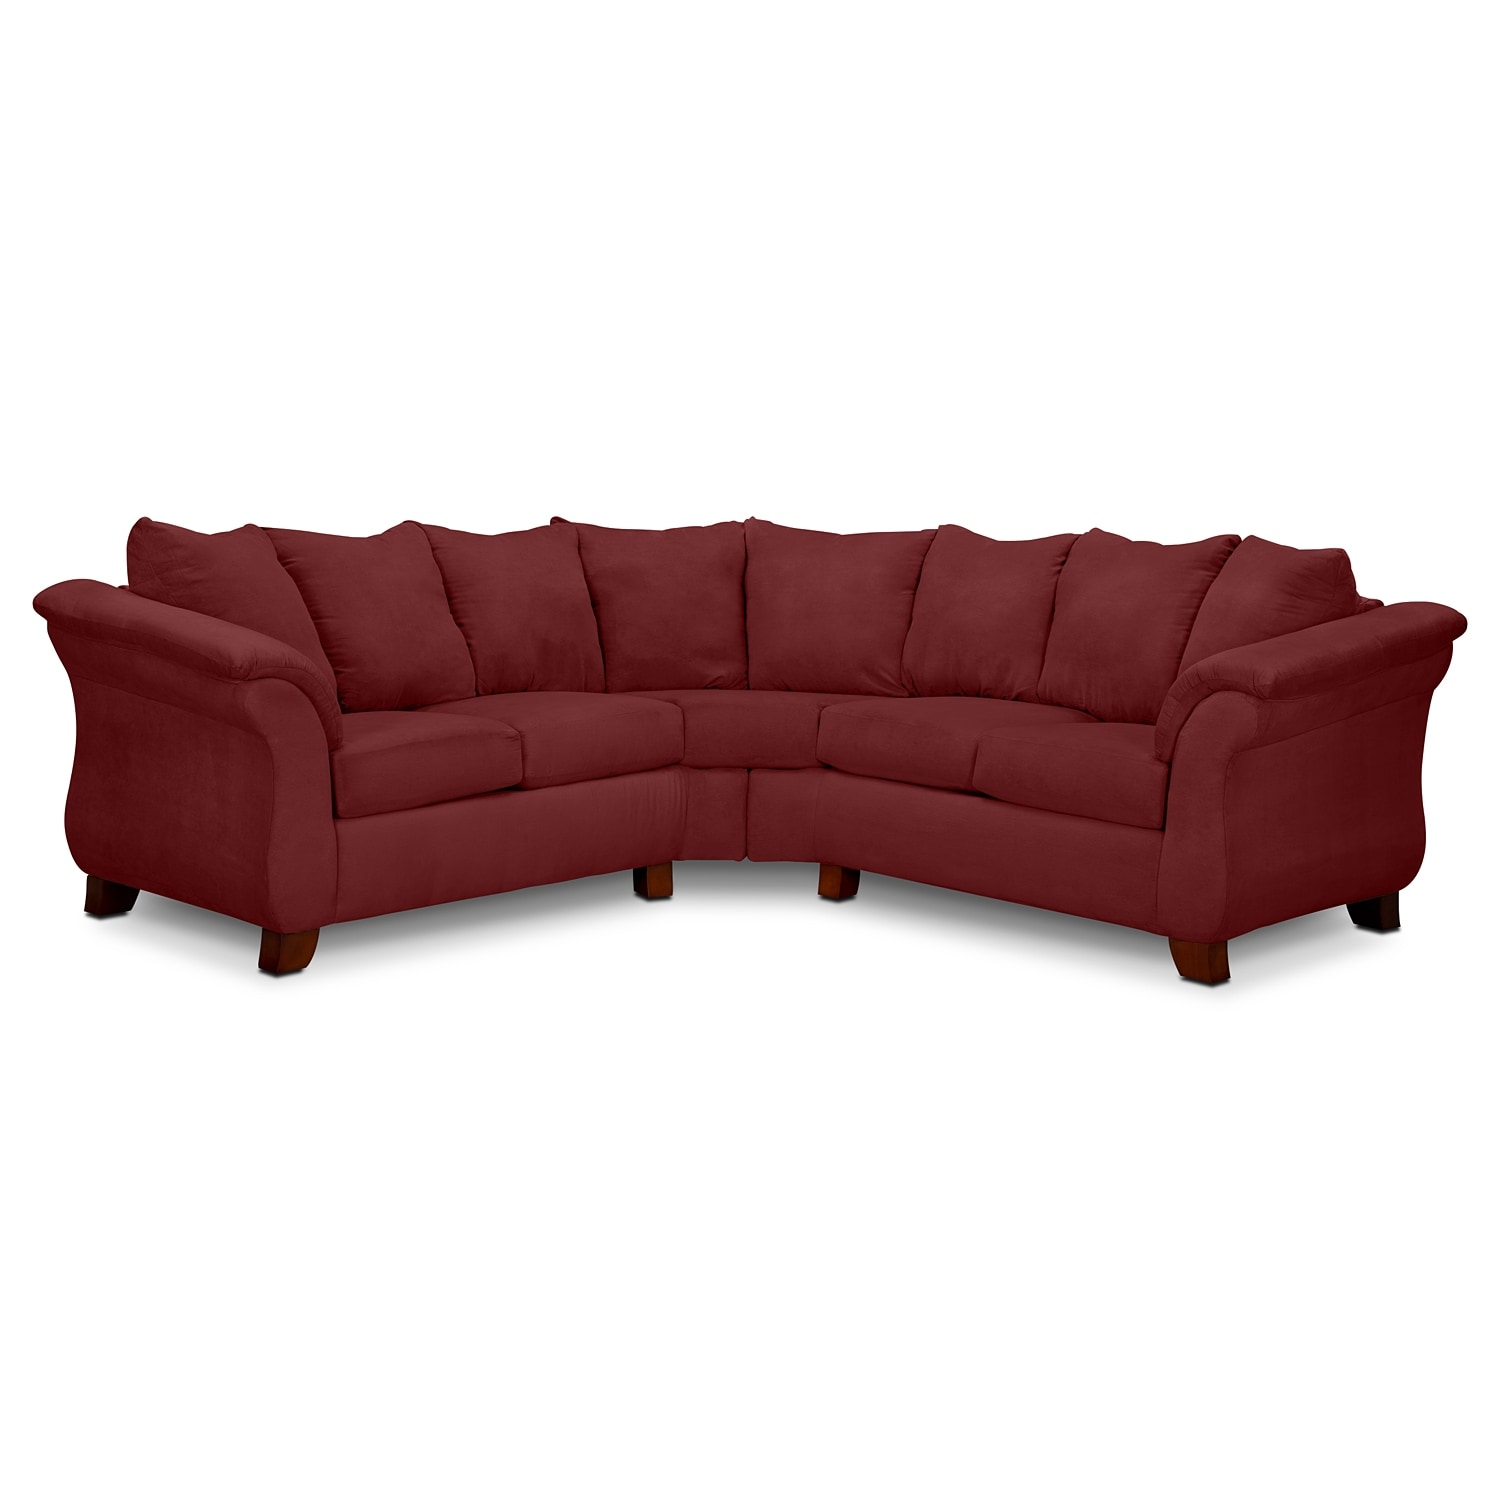 value city furniture clearance center sectional sofas value city funiture value city furniture 20055